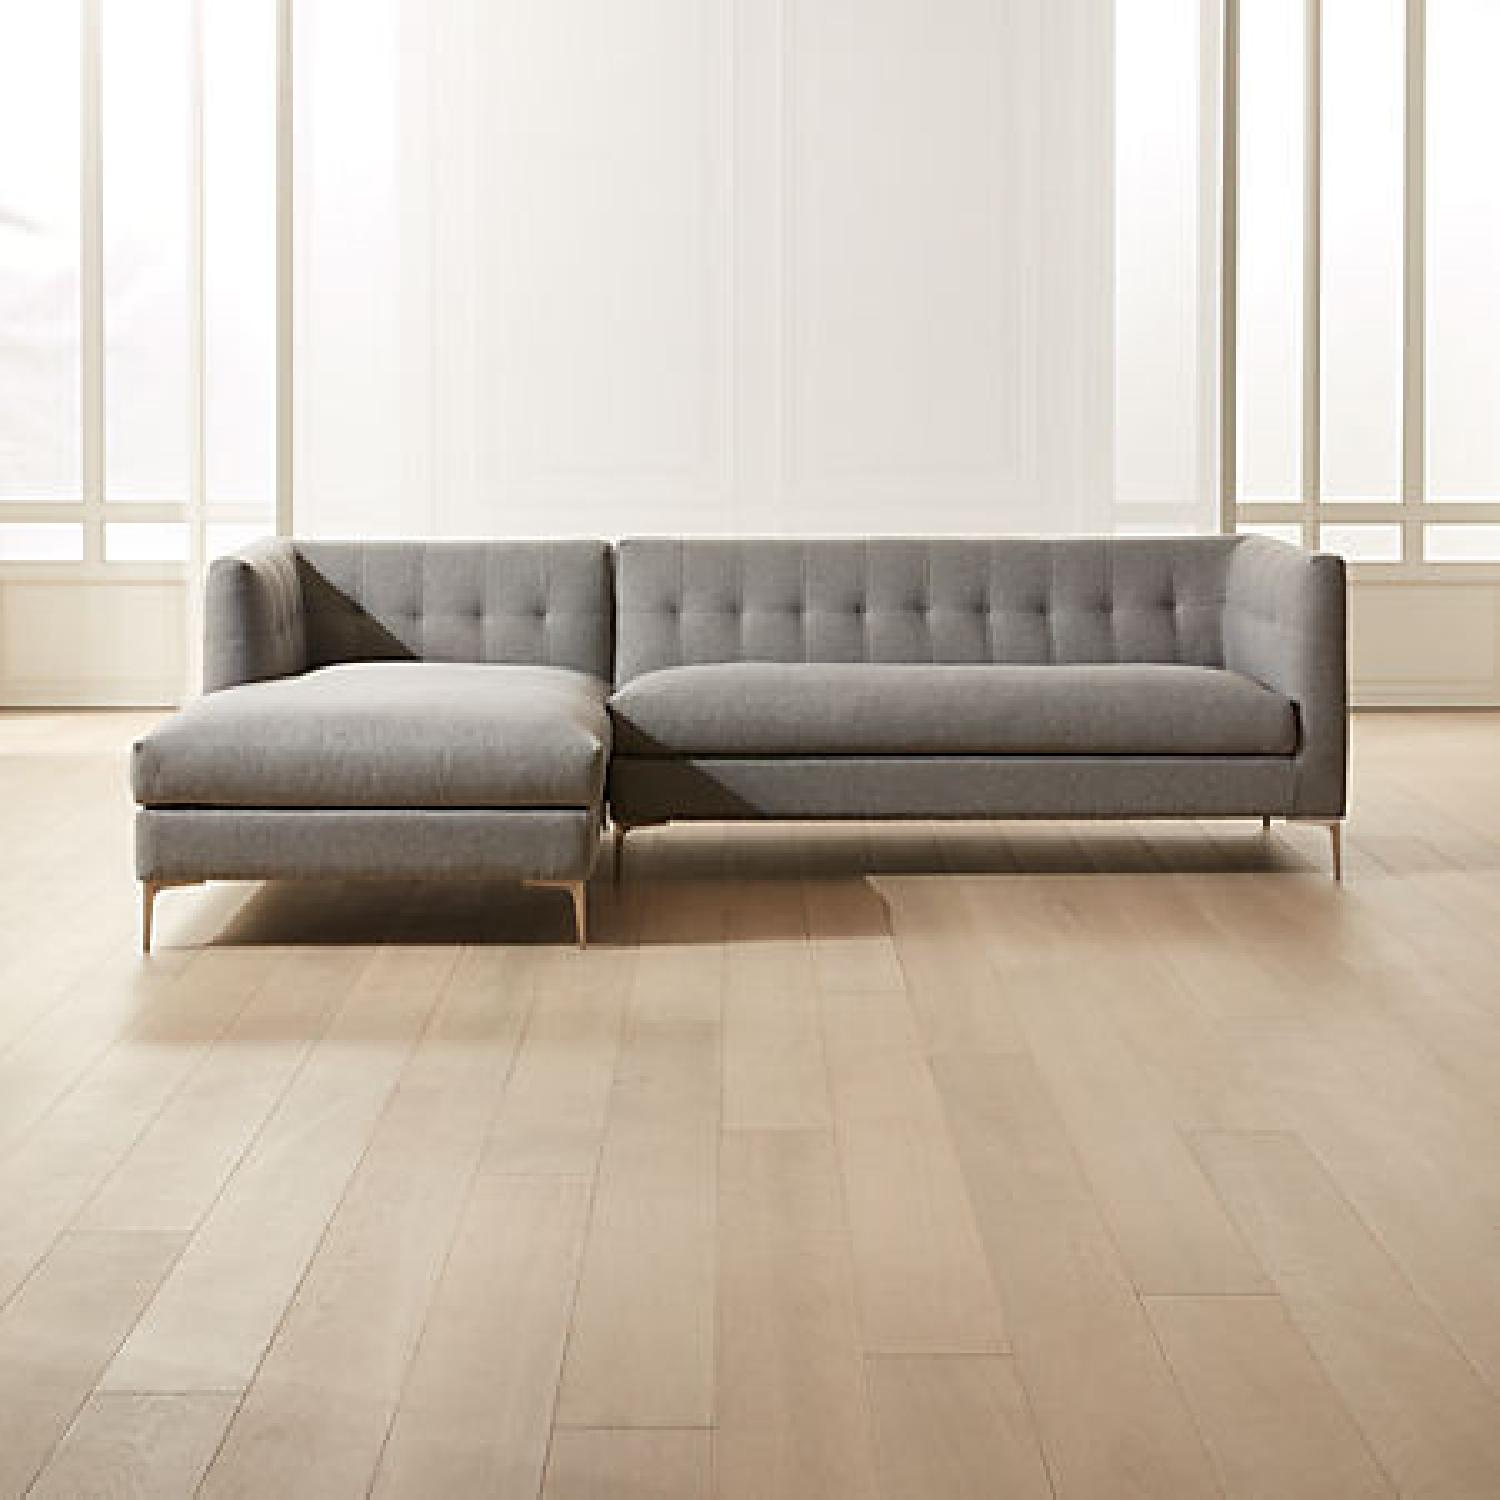 CB2 Tufted Grey Chaise Lounge Sofa - image-5